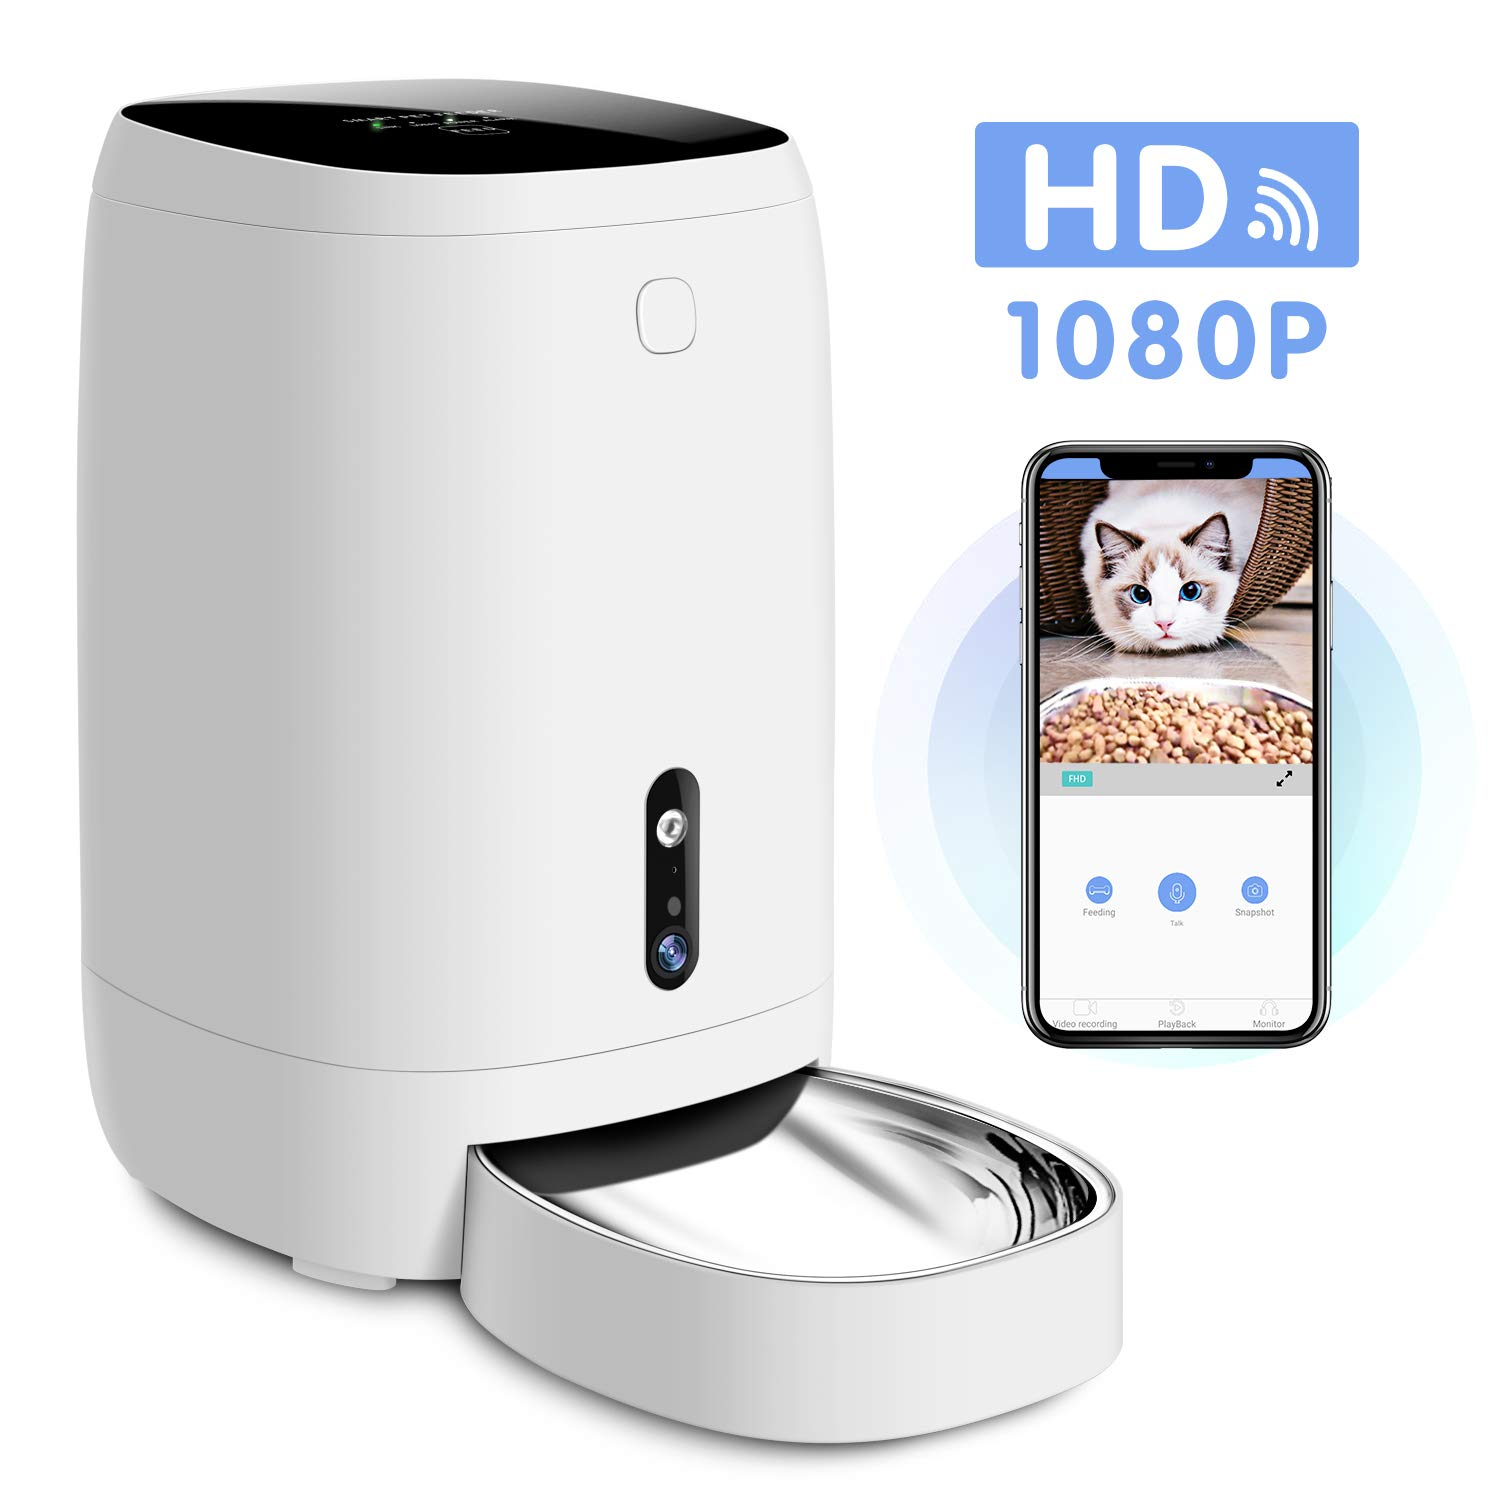 Uterip Smart Automatic Pet Feeder, 4L Pet Food Dispenser Auto Feeder for Dogs, Cats & Small Animals, HD Camera for Video and Audio Communication, Wi-Fi Enabled App for iOS and Android by Uterip